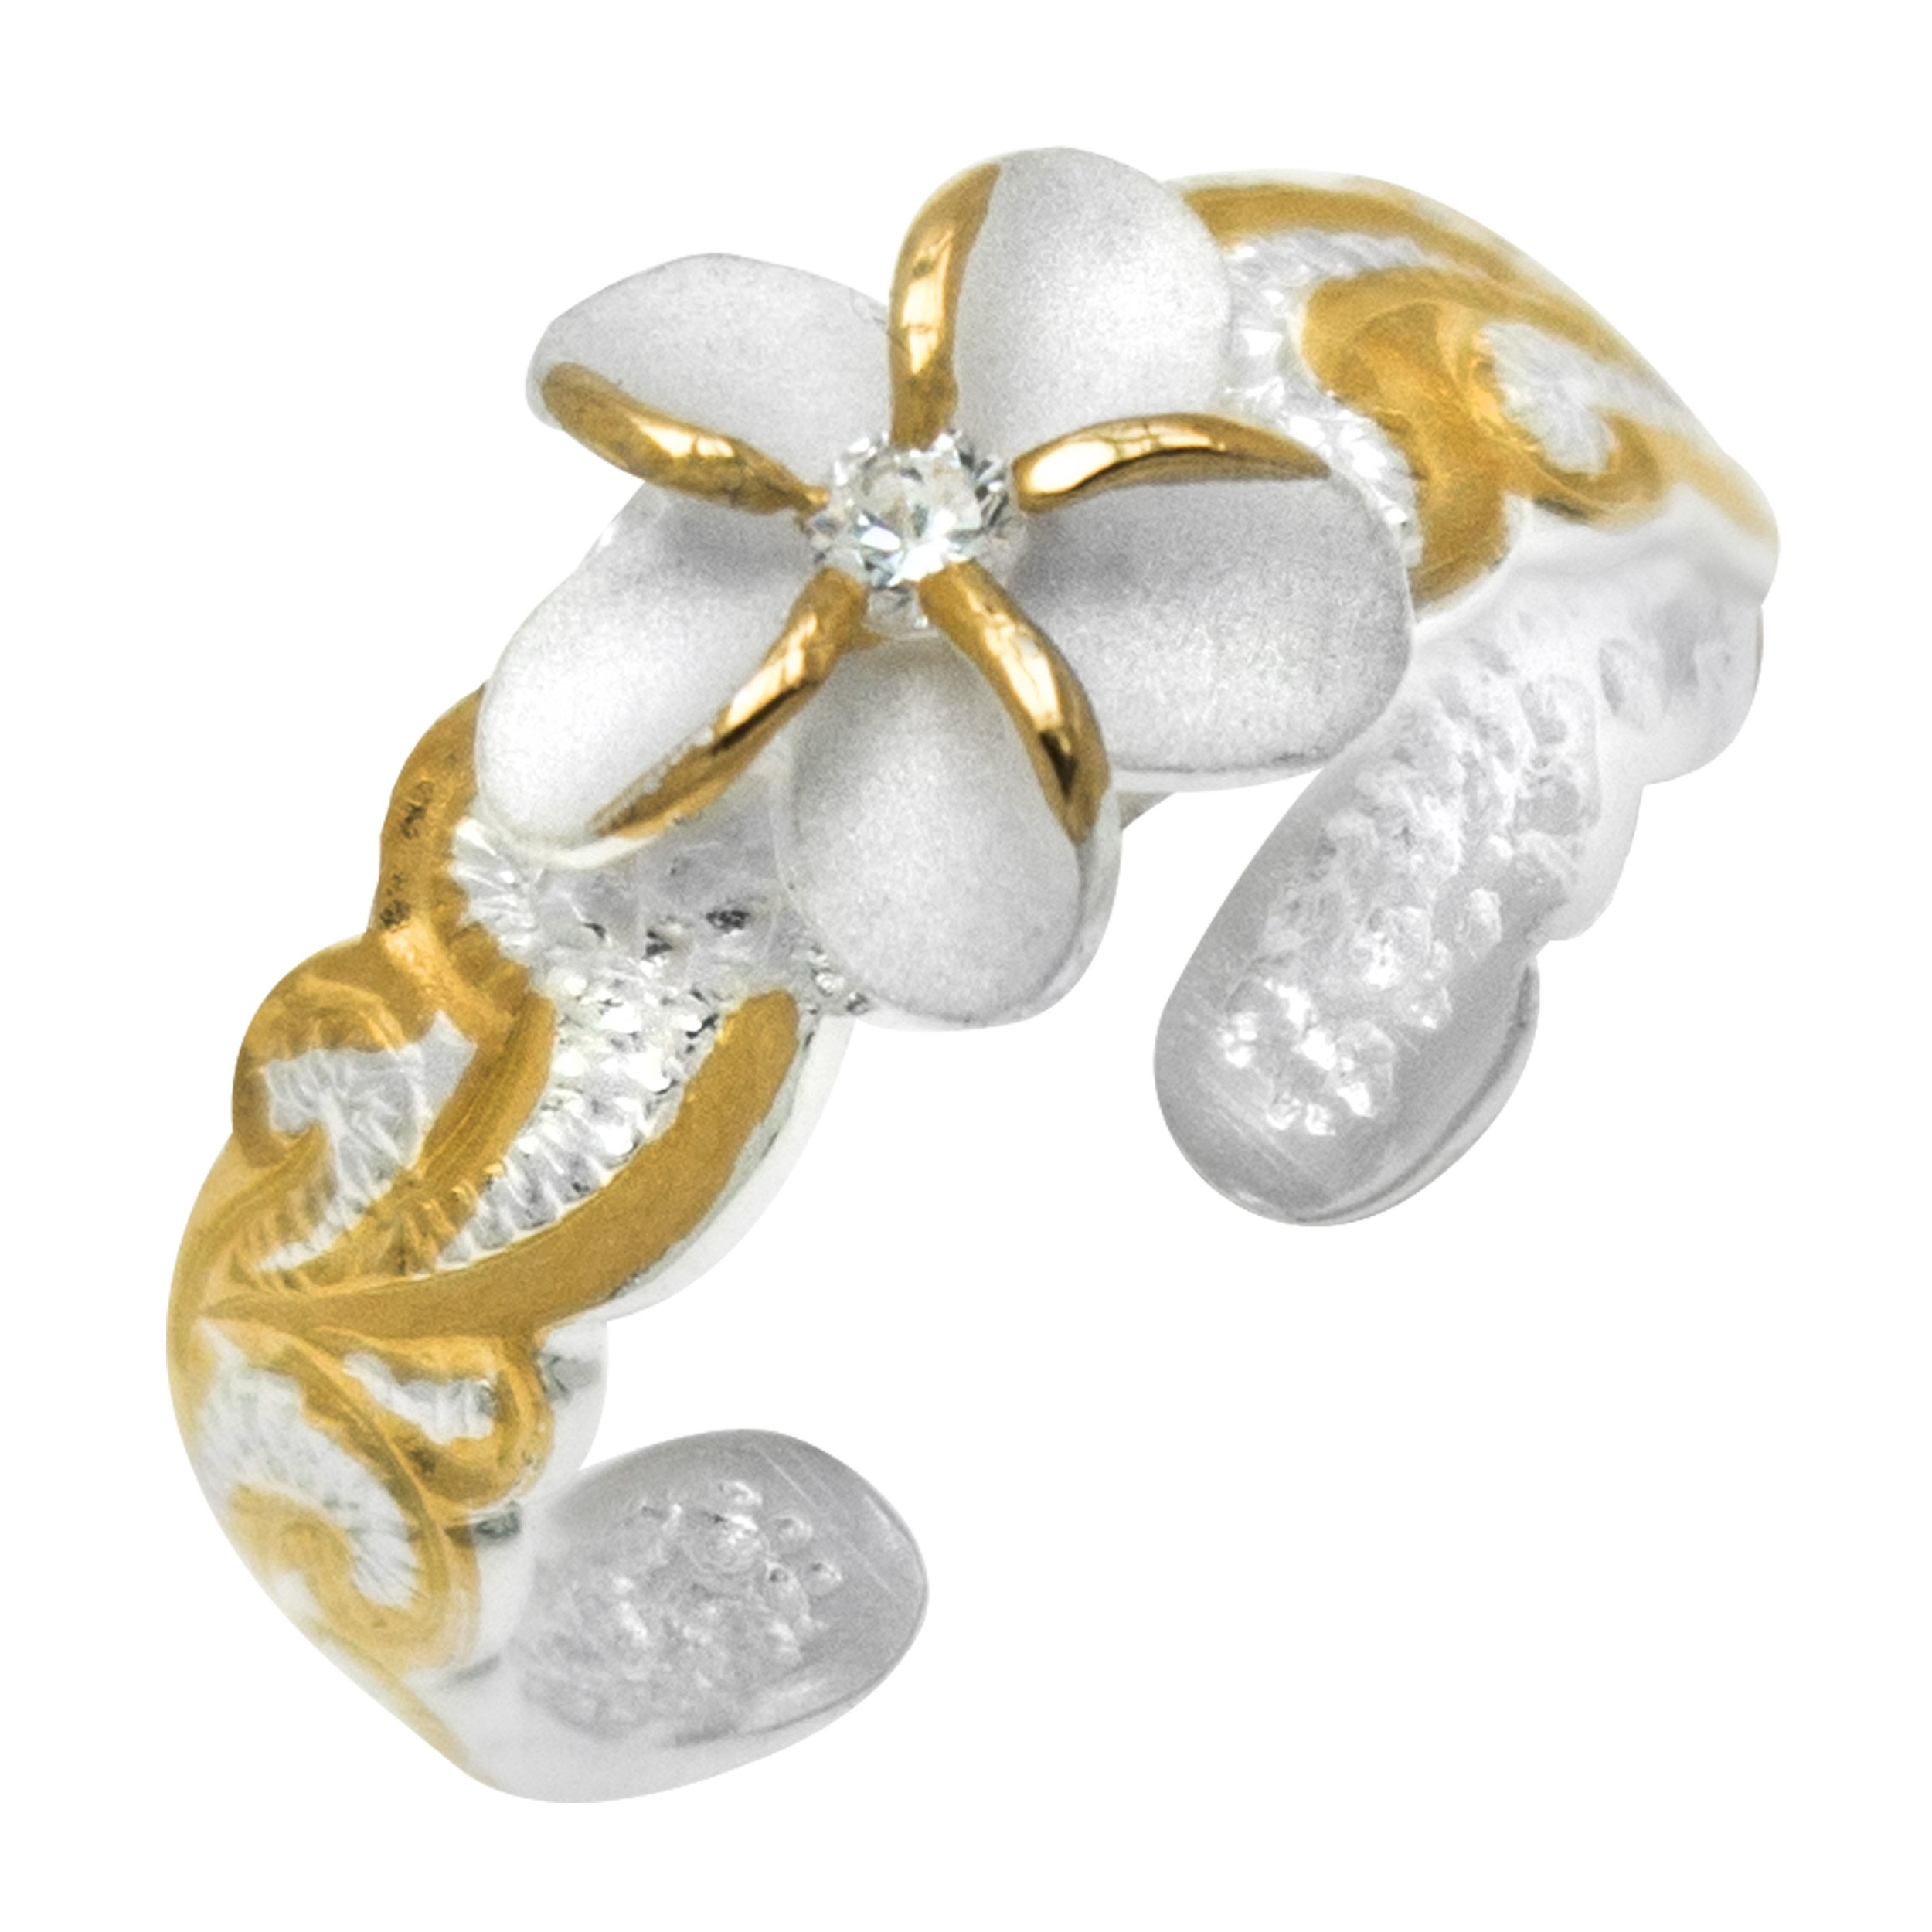 Honolulu Jewelry Company Sterling Silver Two Tone Plumeria CZ Toe Ring with 14k Gold Plated Trim by Honolulu Jewelry Company